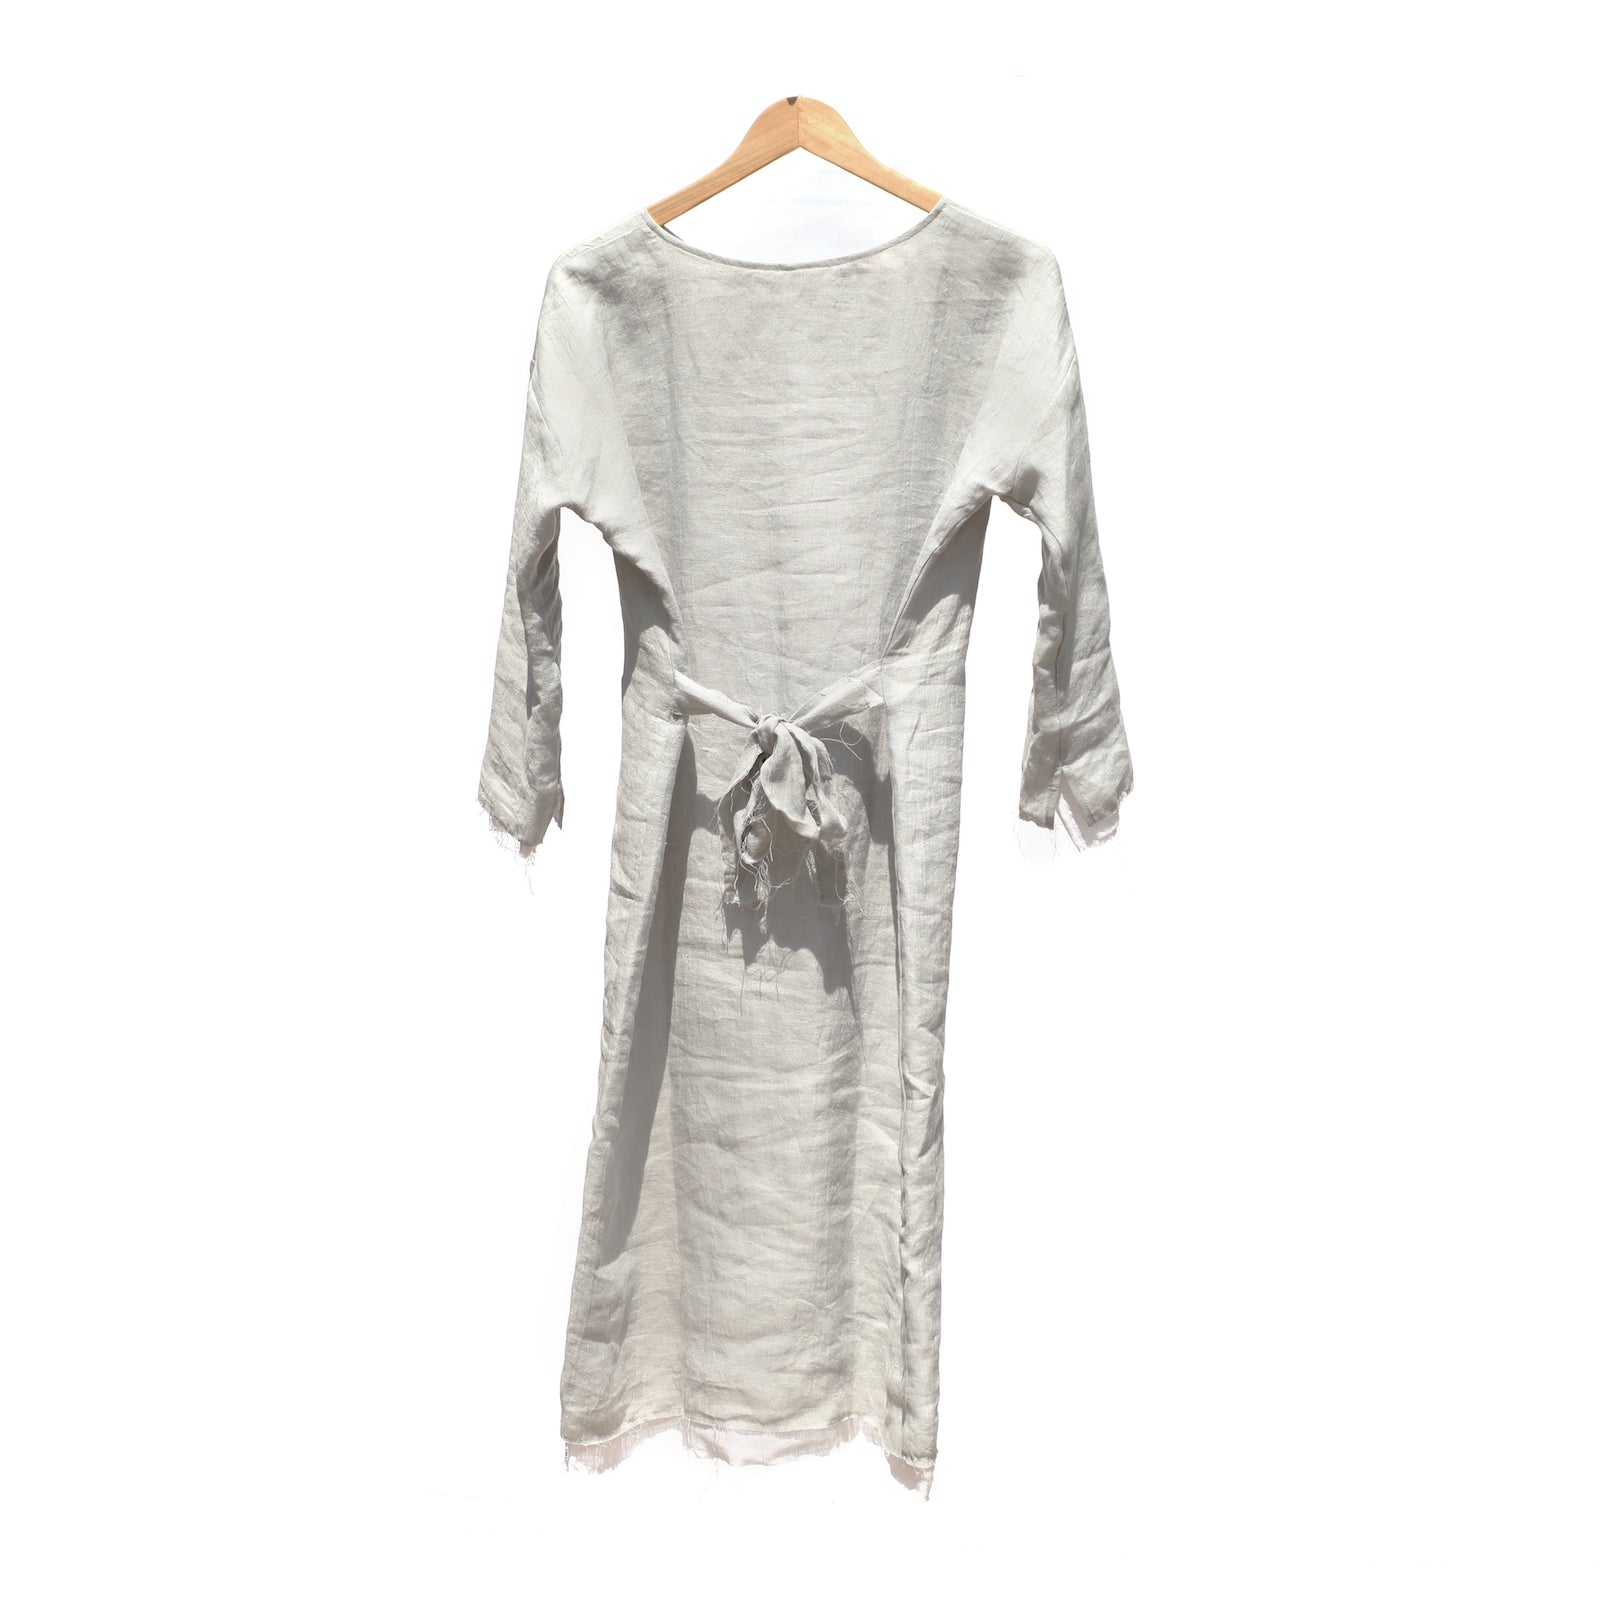 Double Layer Dress - Grey / White